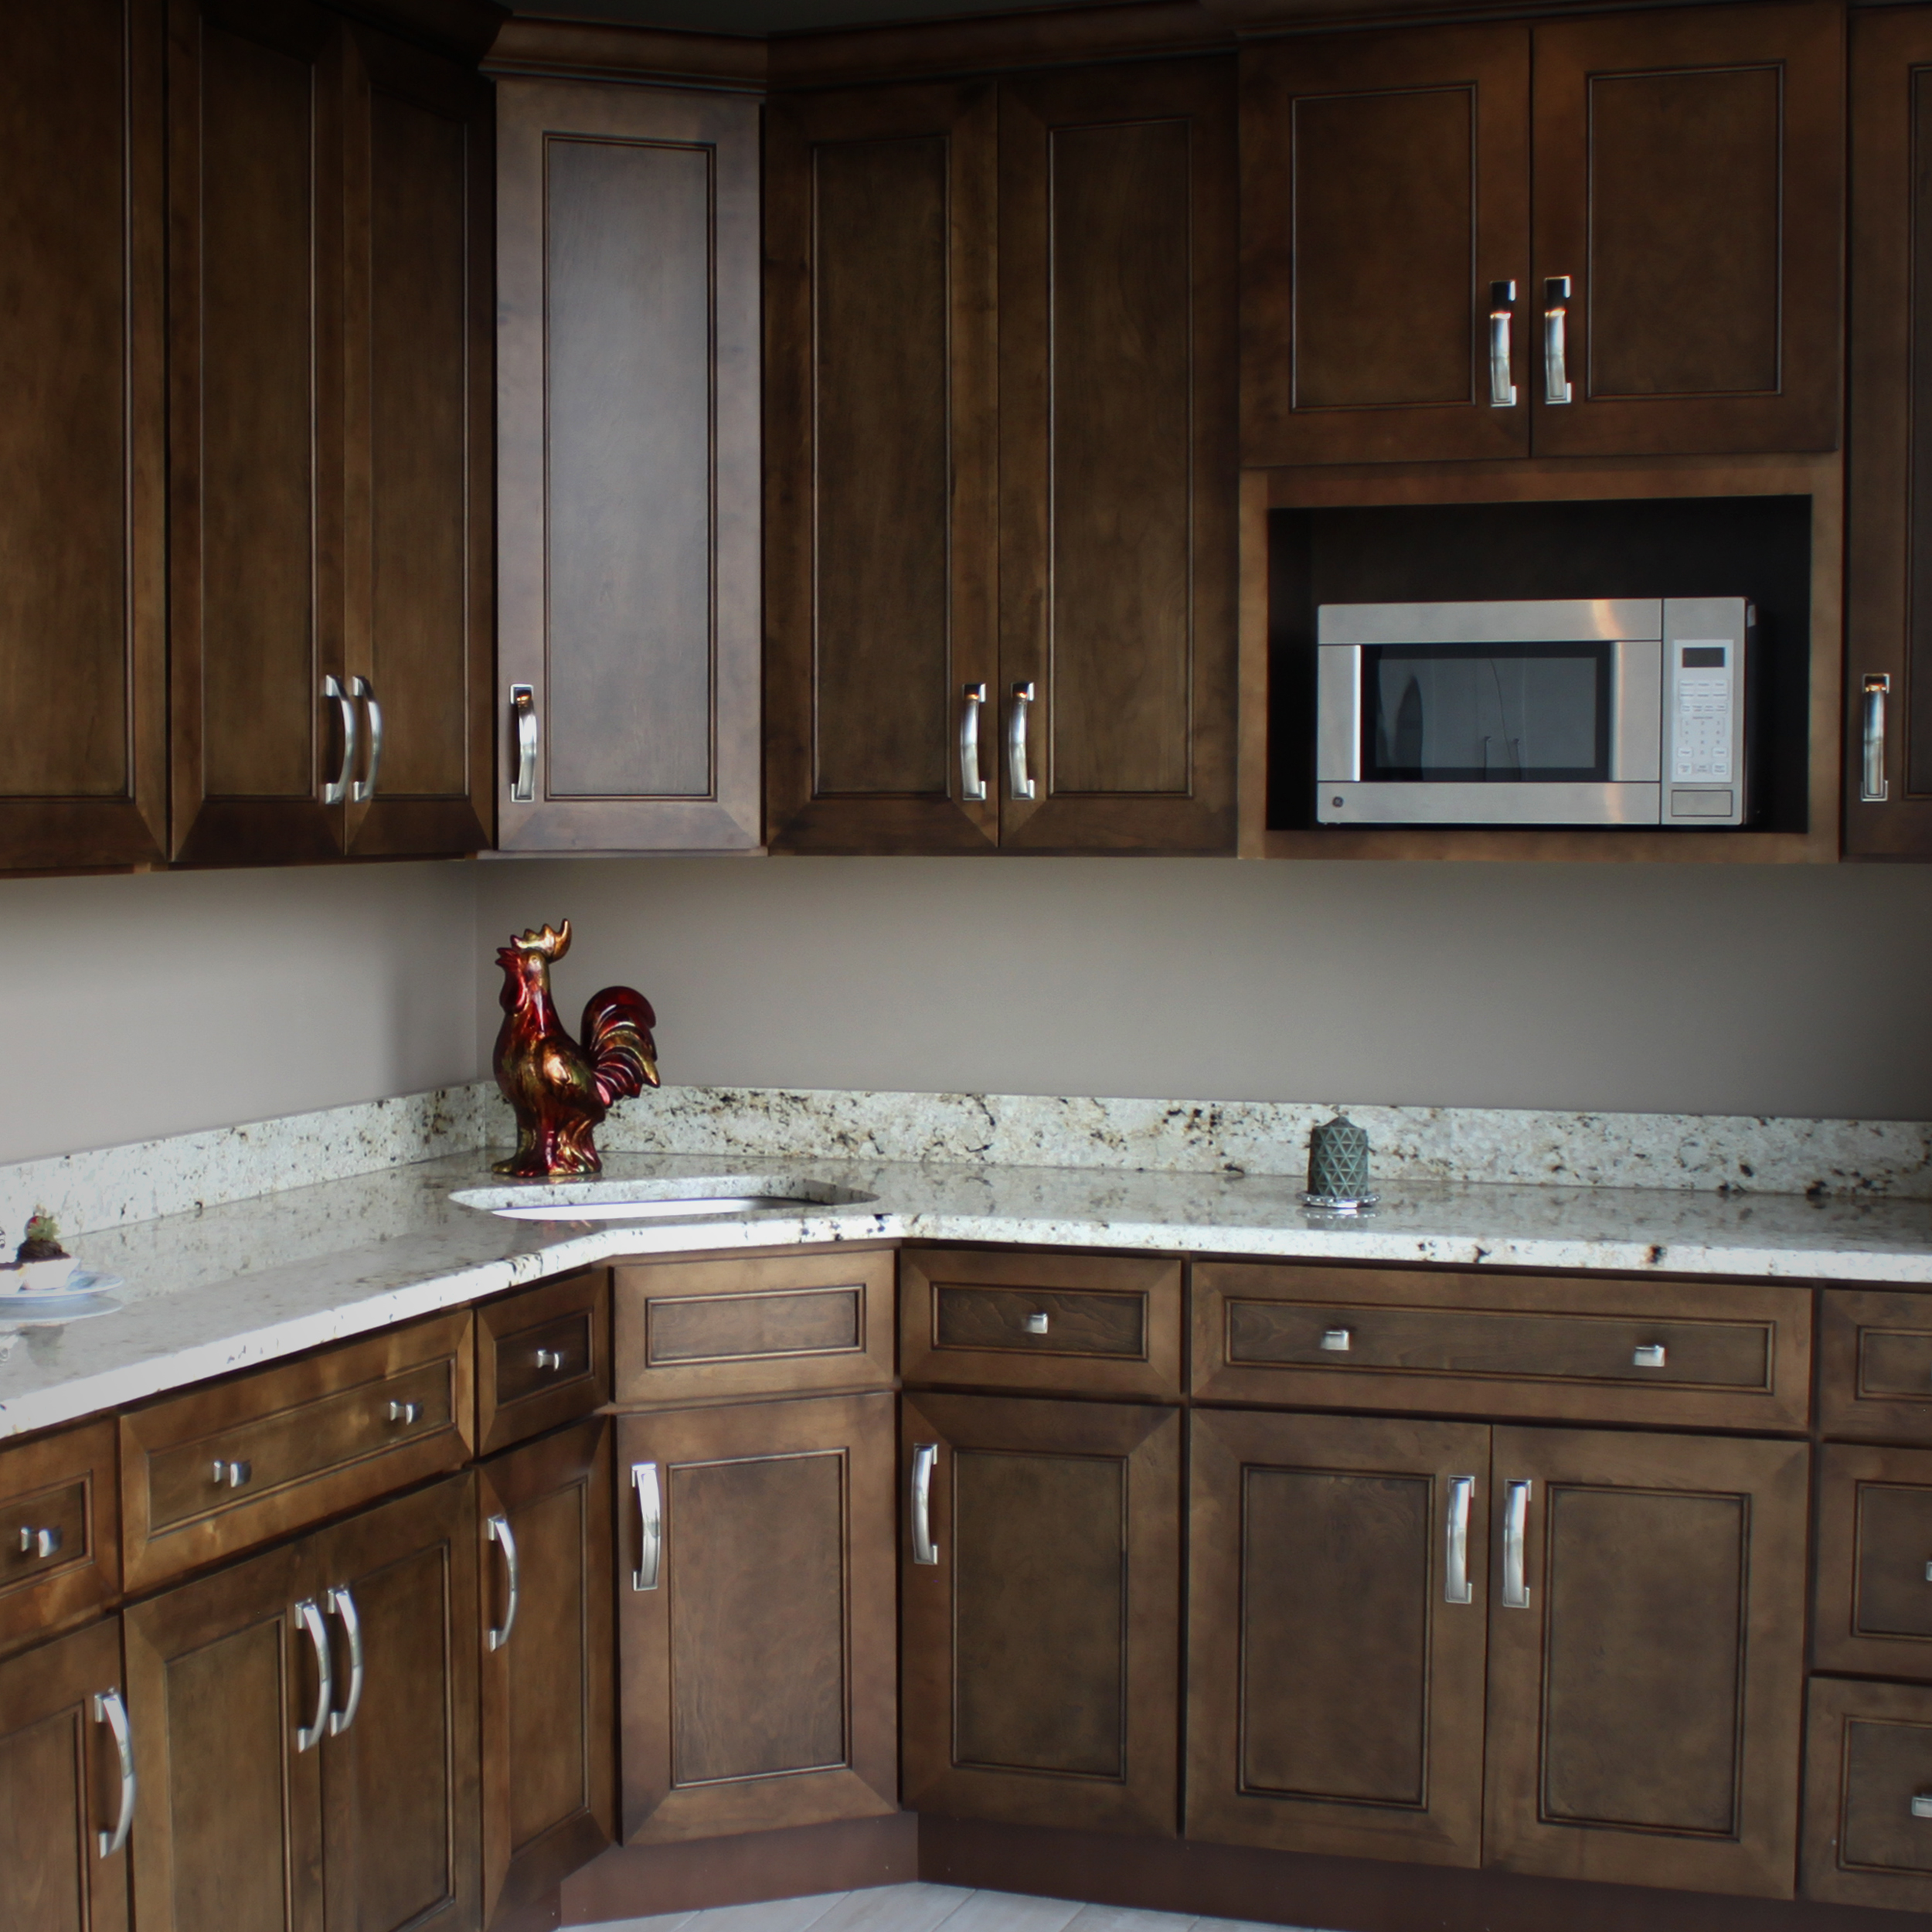 west chicago kitchen cabinets kitchen cabinets chicago West Chicago Discount Kitchen Cabinets Countertops and Sinks